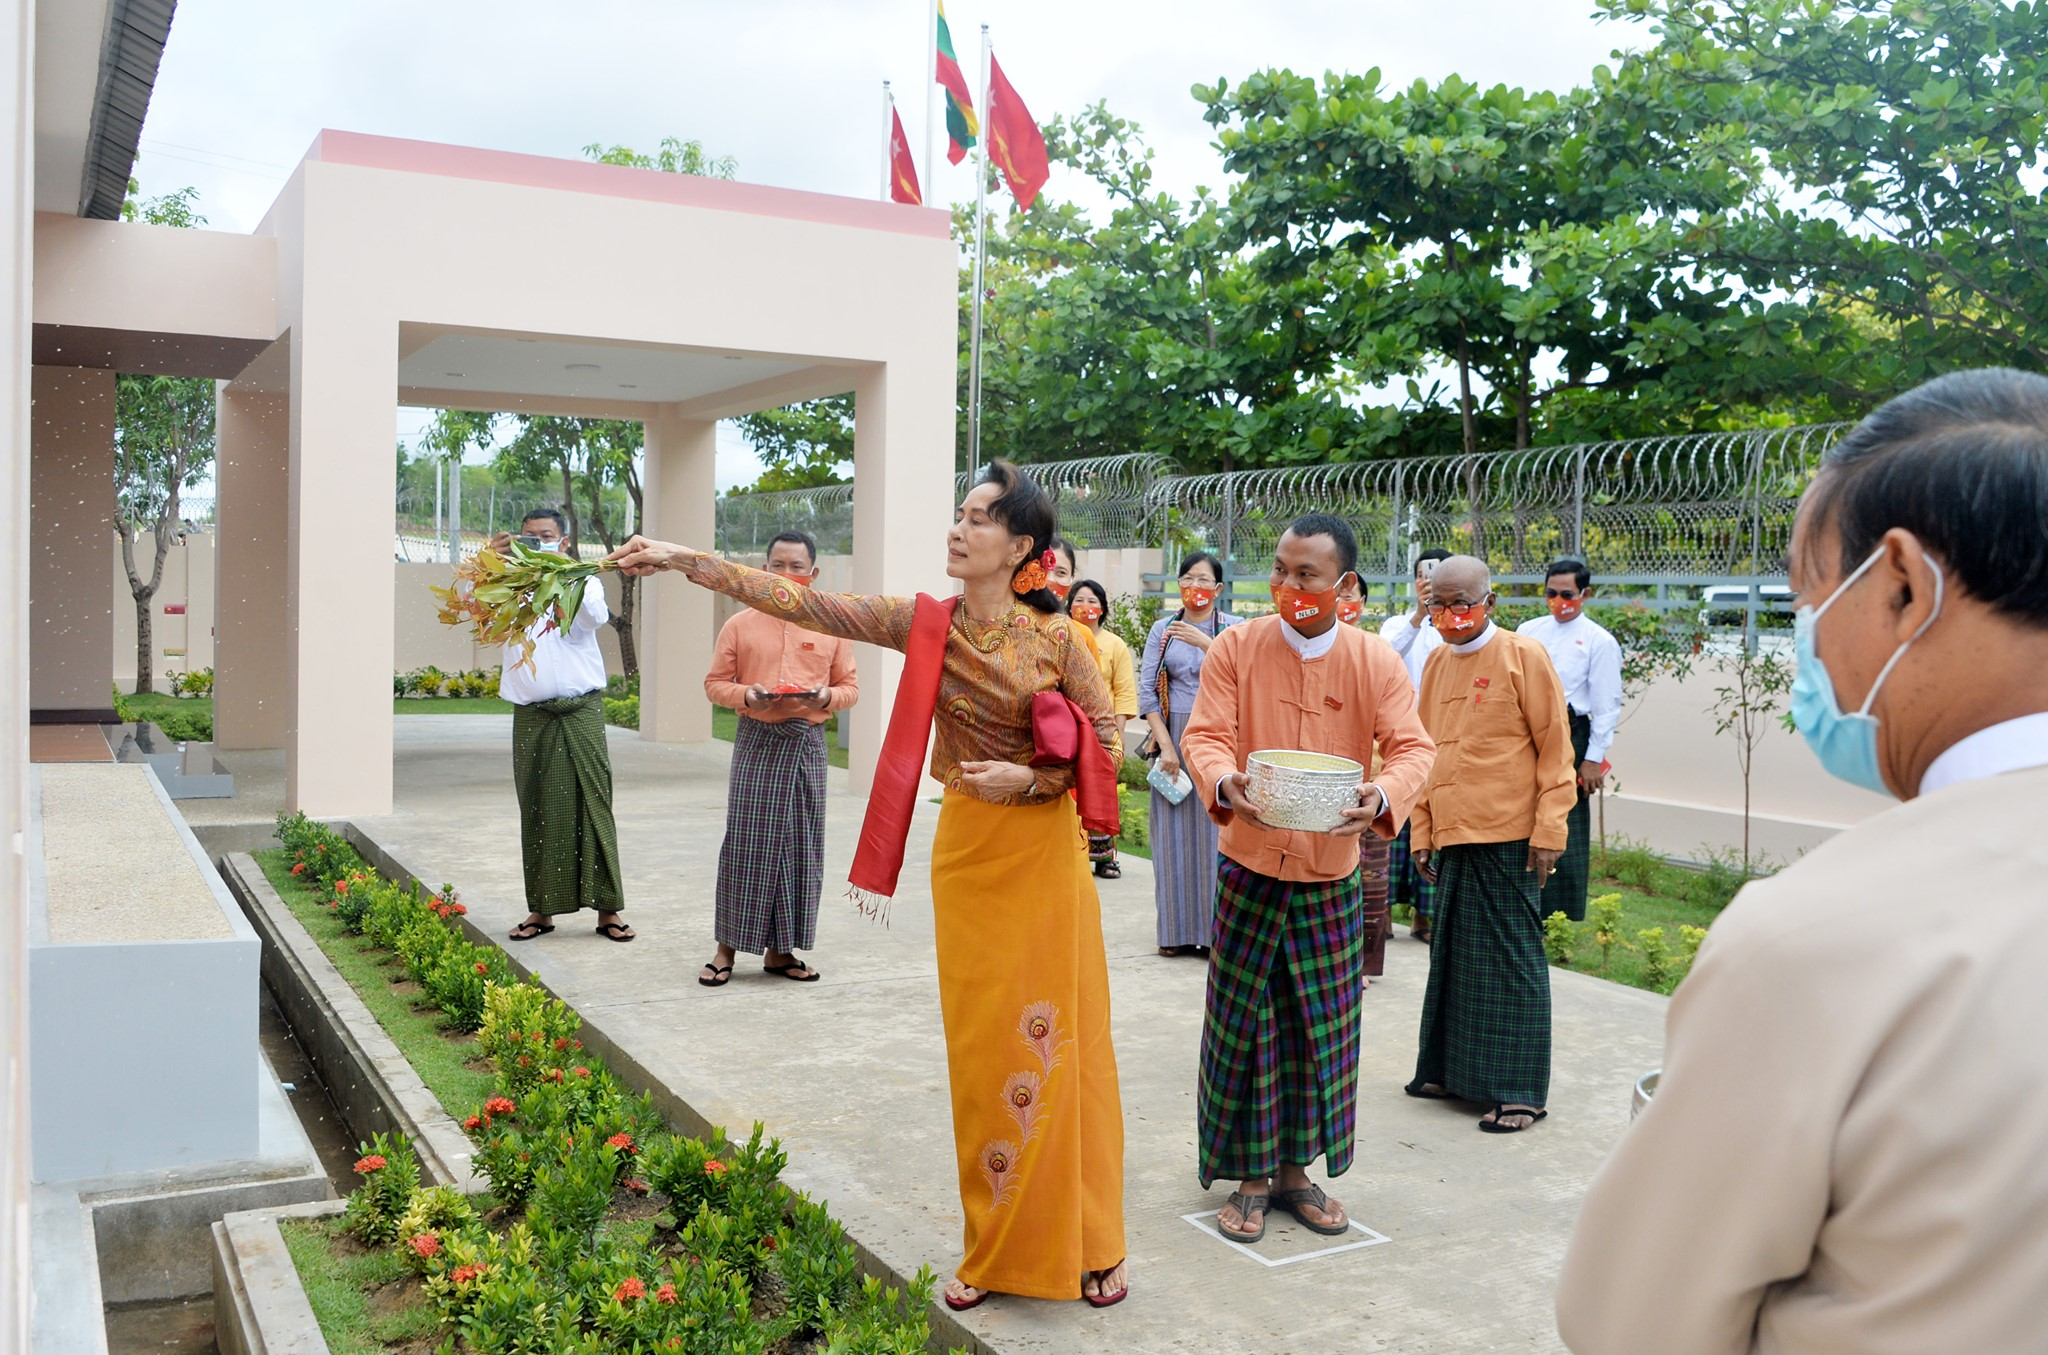 Daw Aung San Suu Kyi opens the National League for Democracy office in Nay Pyi Taw's Ottarathiri Township on July 5. (Supplied | NLD Facebook)